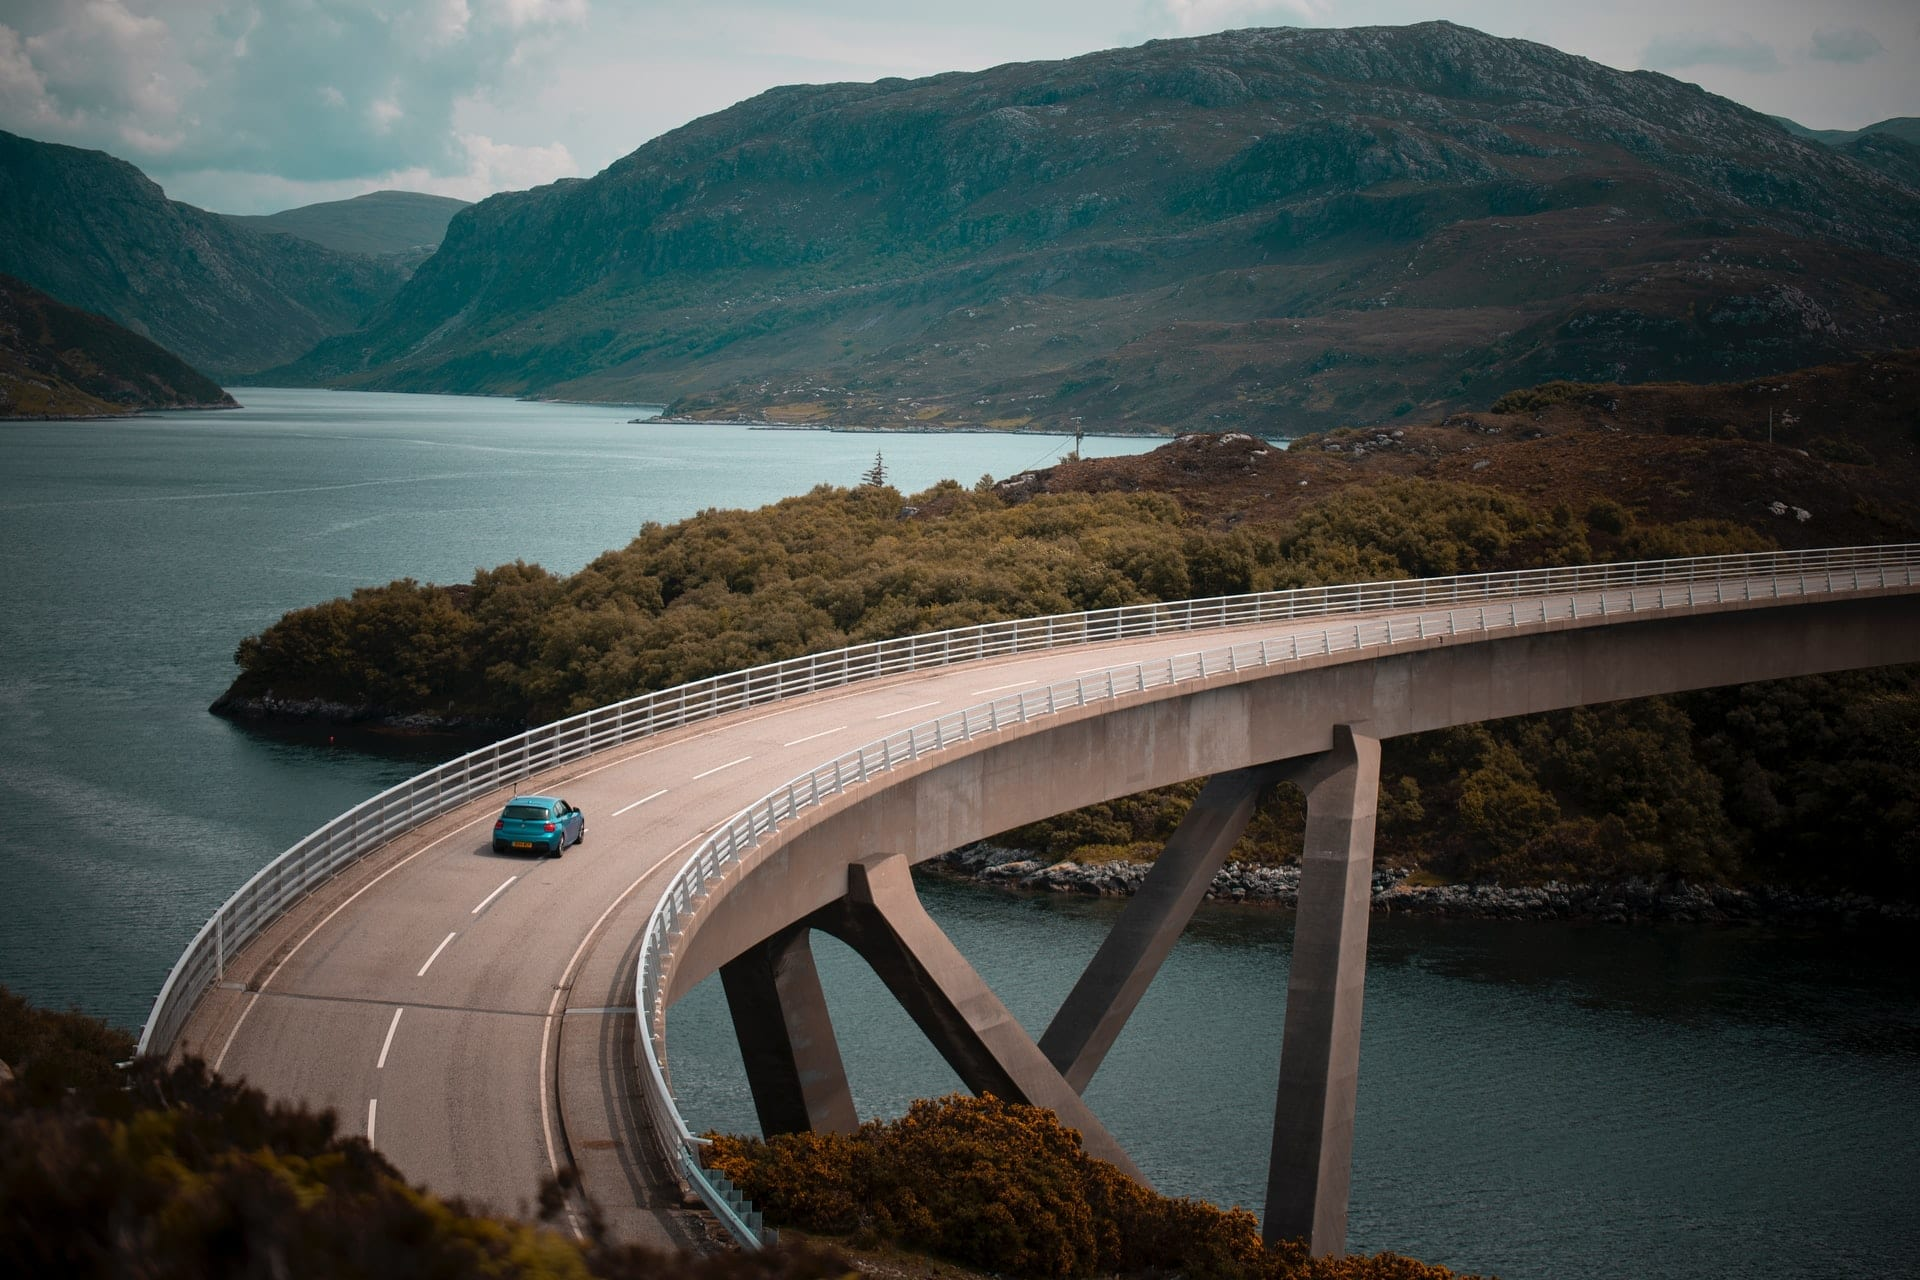 car-driving-across-a-winding-bridge-above-lake-with-mountains-in-background-kylesku-bridge-in-assynt-north-coast-500-scotland-best-scenic-drives-in-uk